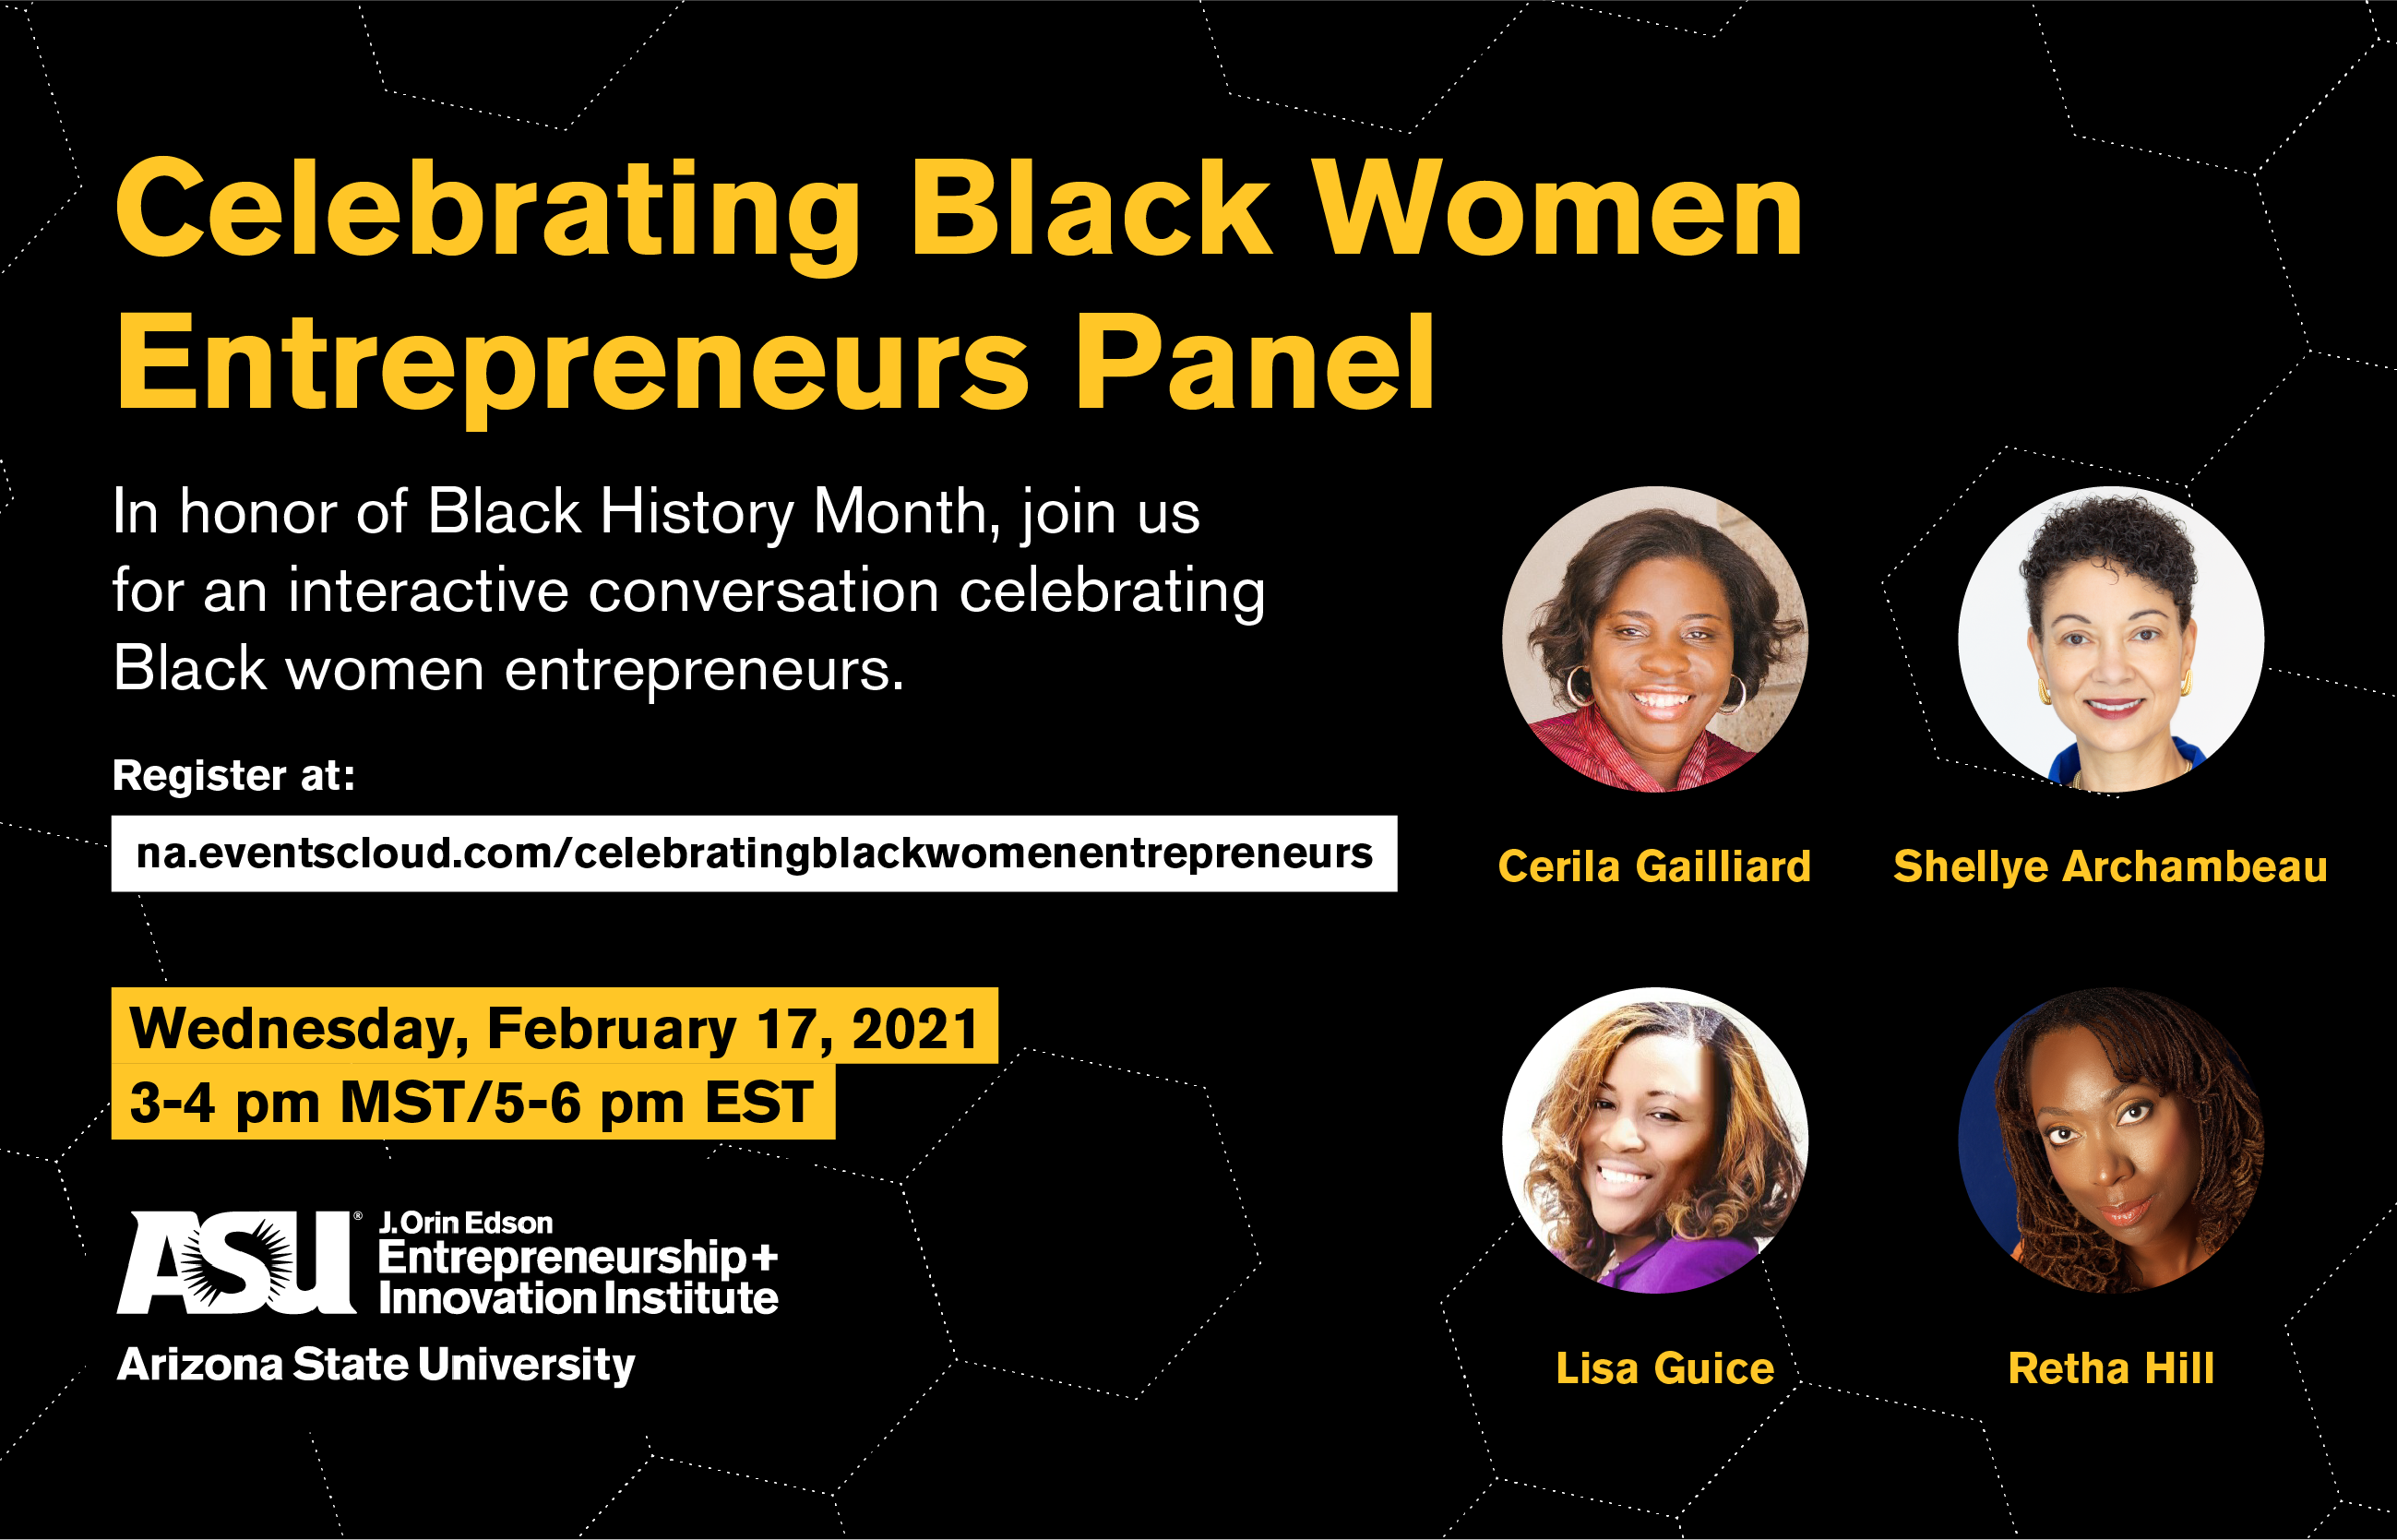 Panel: Celebrating Black Women Entrepreneurs, February 17